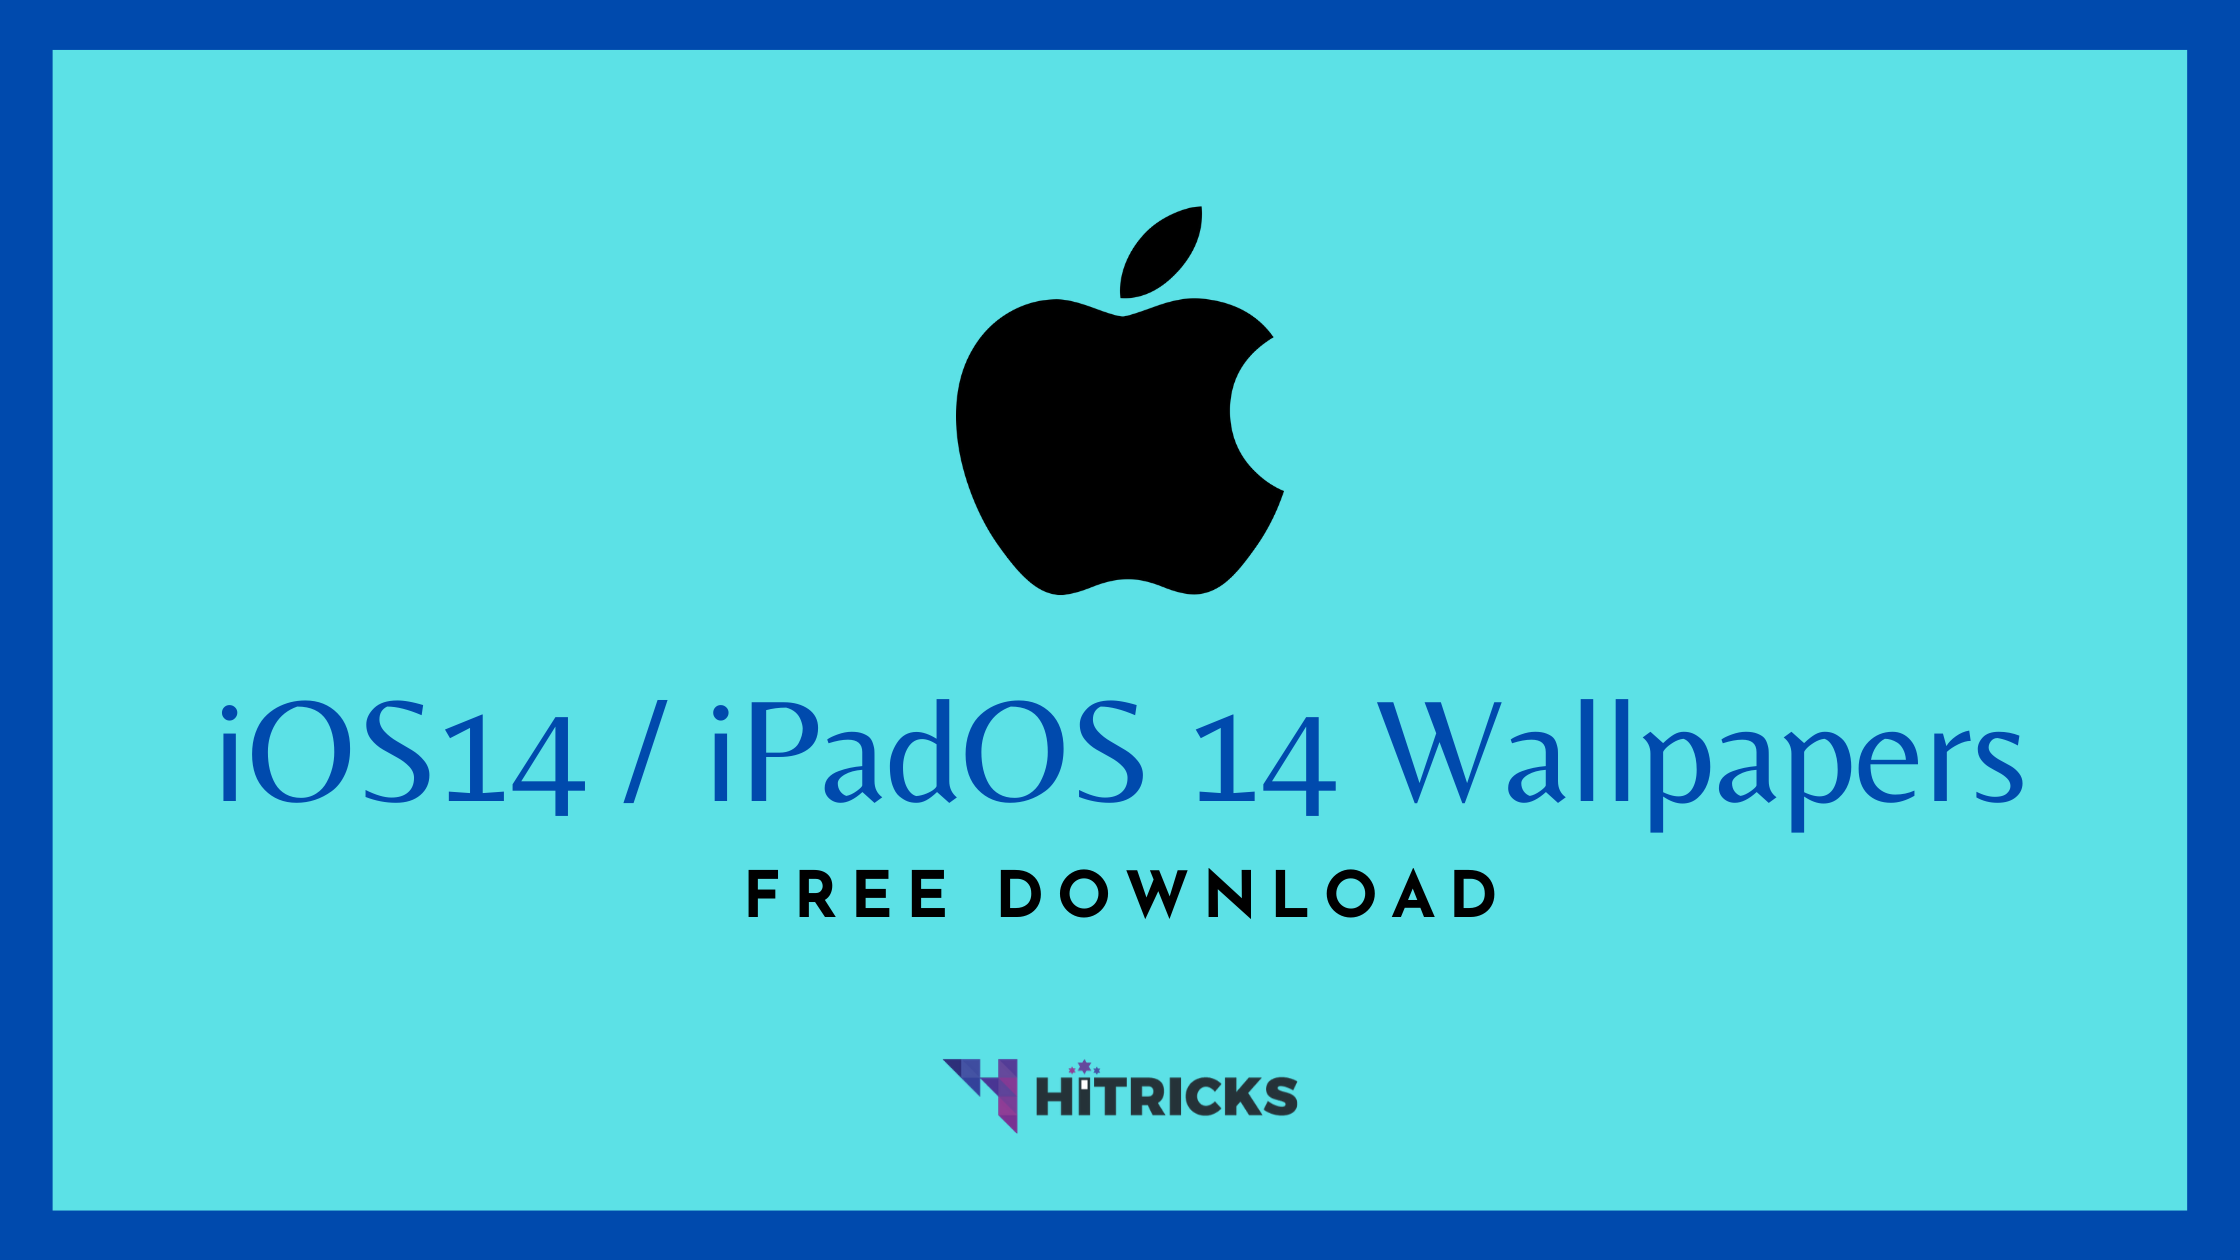 iOS 14 / iPadOS 14 Stock Wallpaper HD Free Download